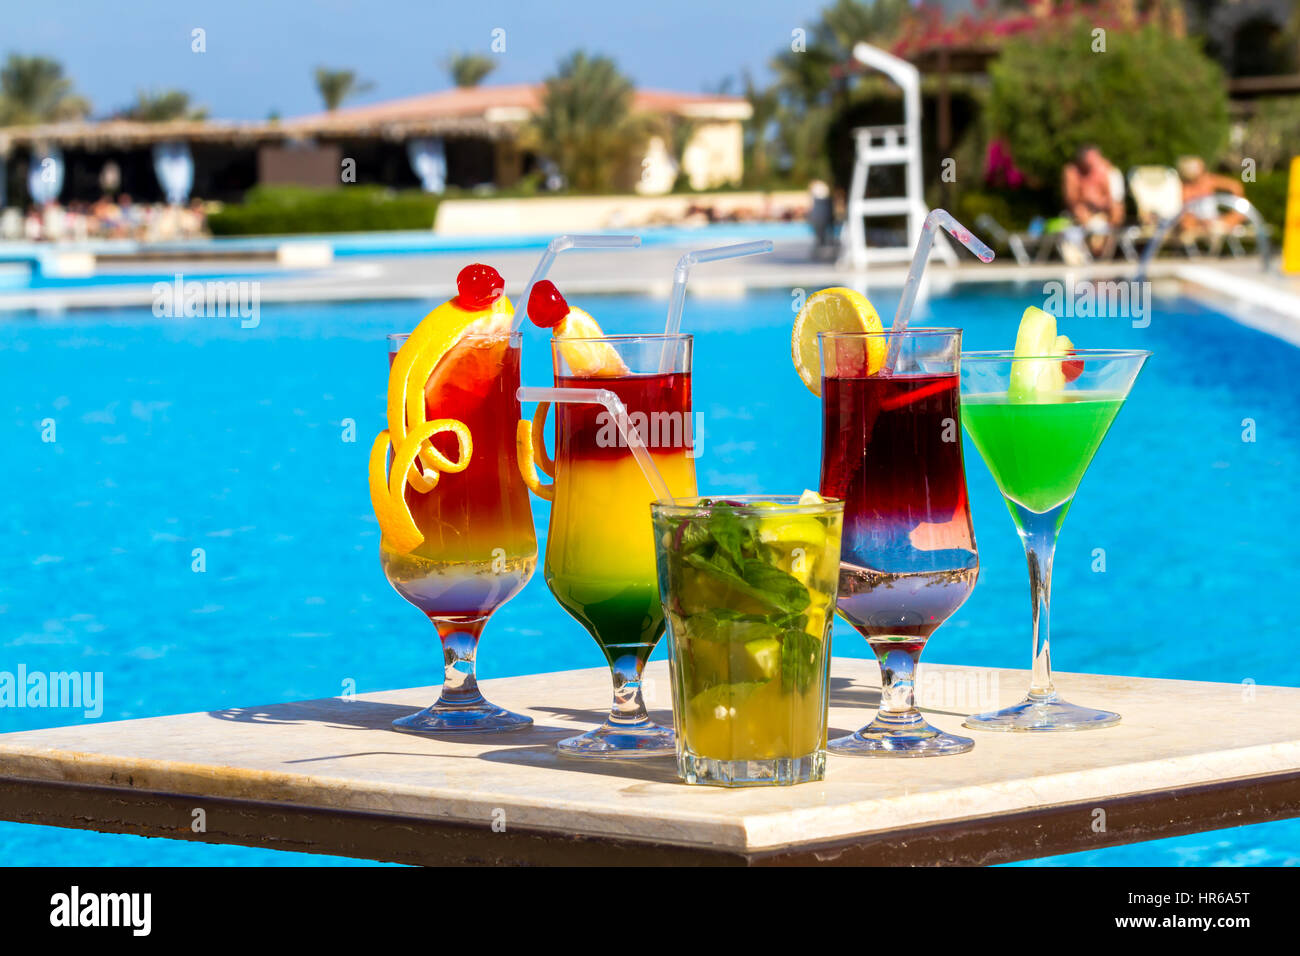 Cocktails By The Pool Stock Photos Cocktails By The Pool Stock Images Alamy